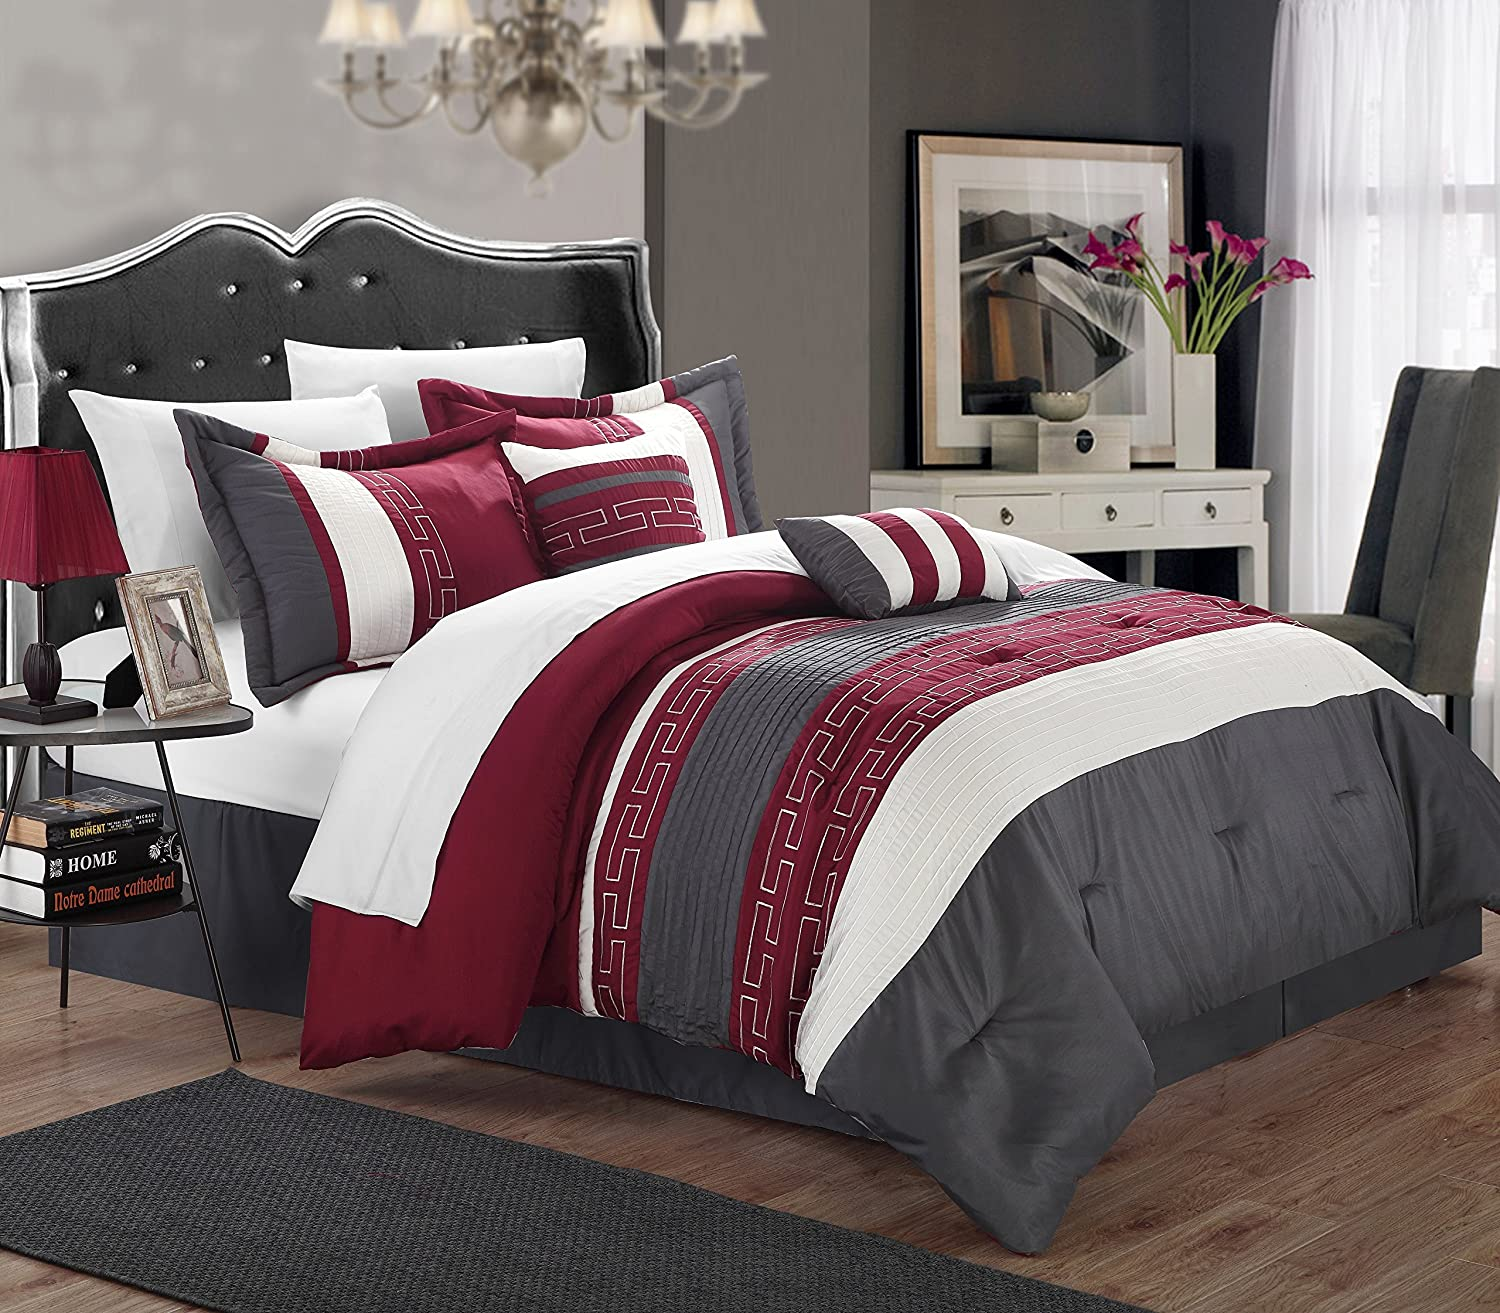 Burgundy & Black Bedding Sets Sale – Ease Bedding with Style